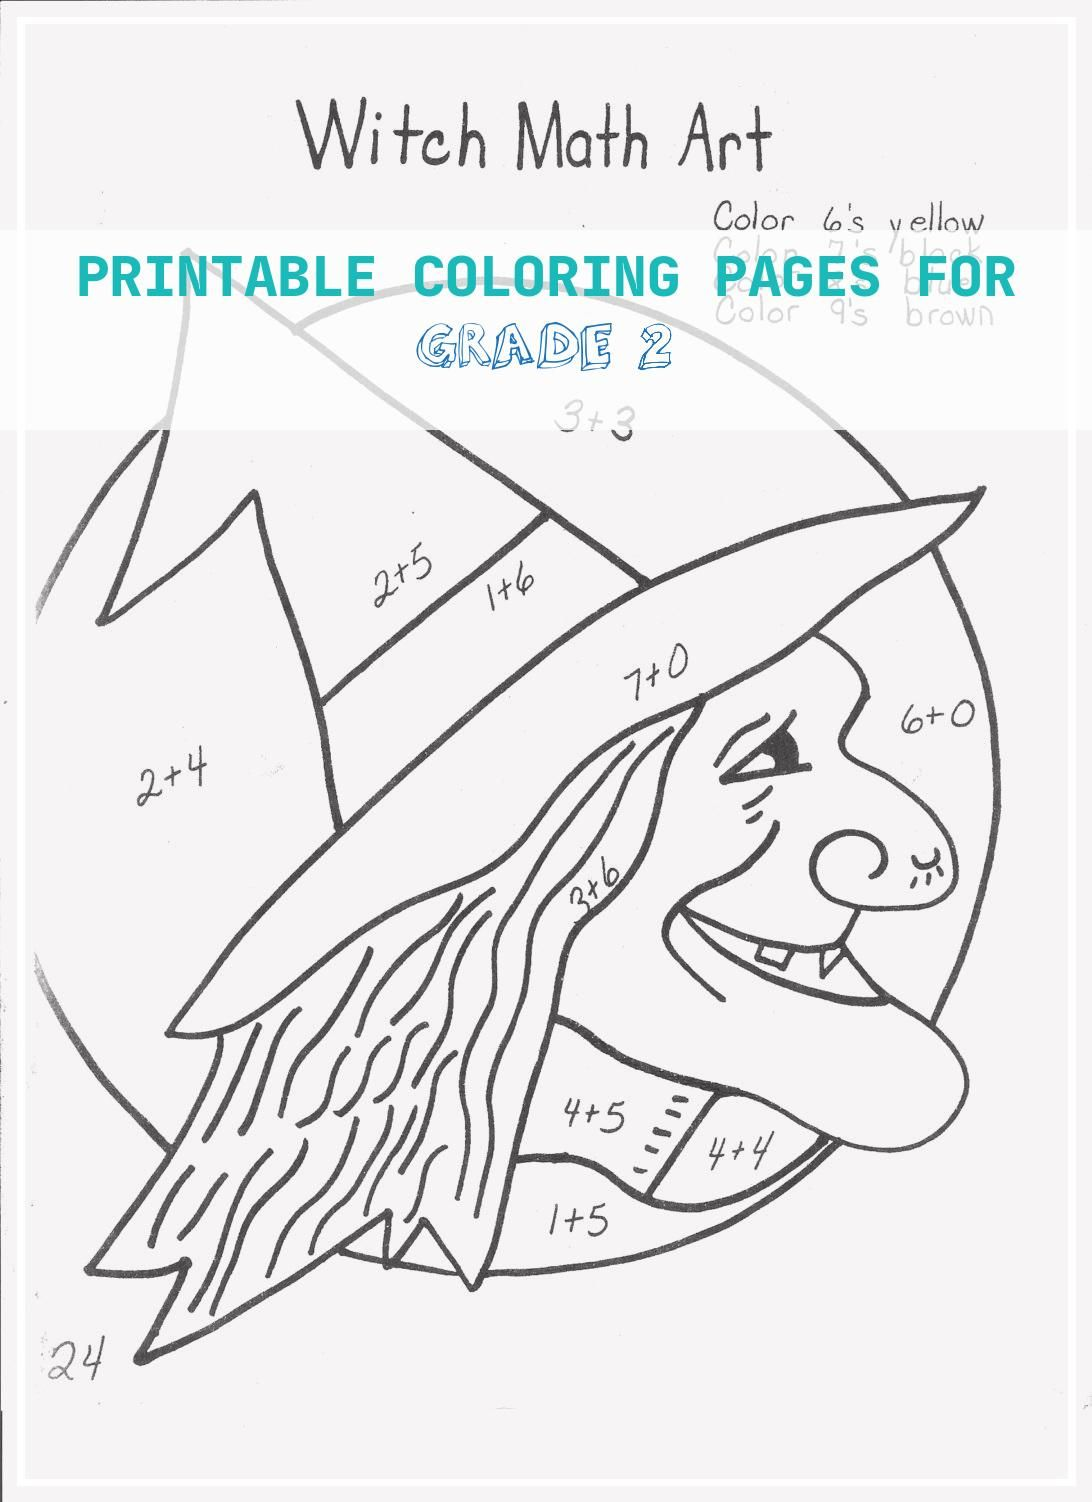 17 Printable Coloring Pages For Grade 2 In